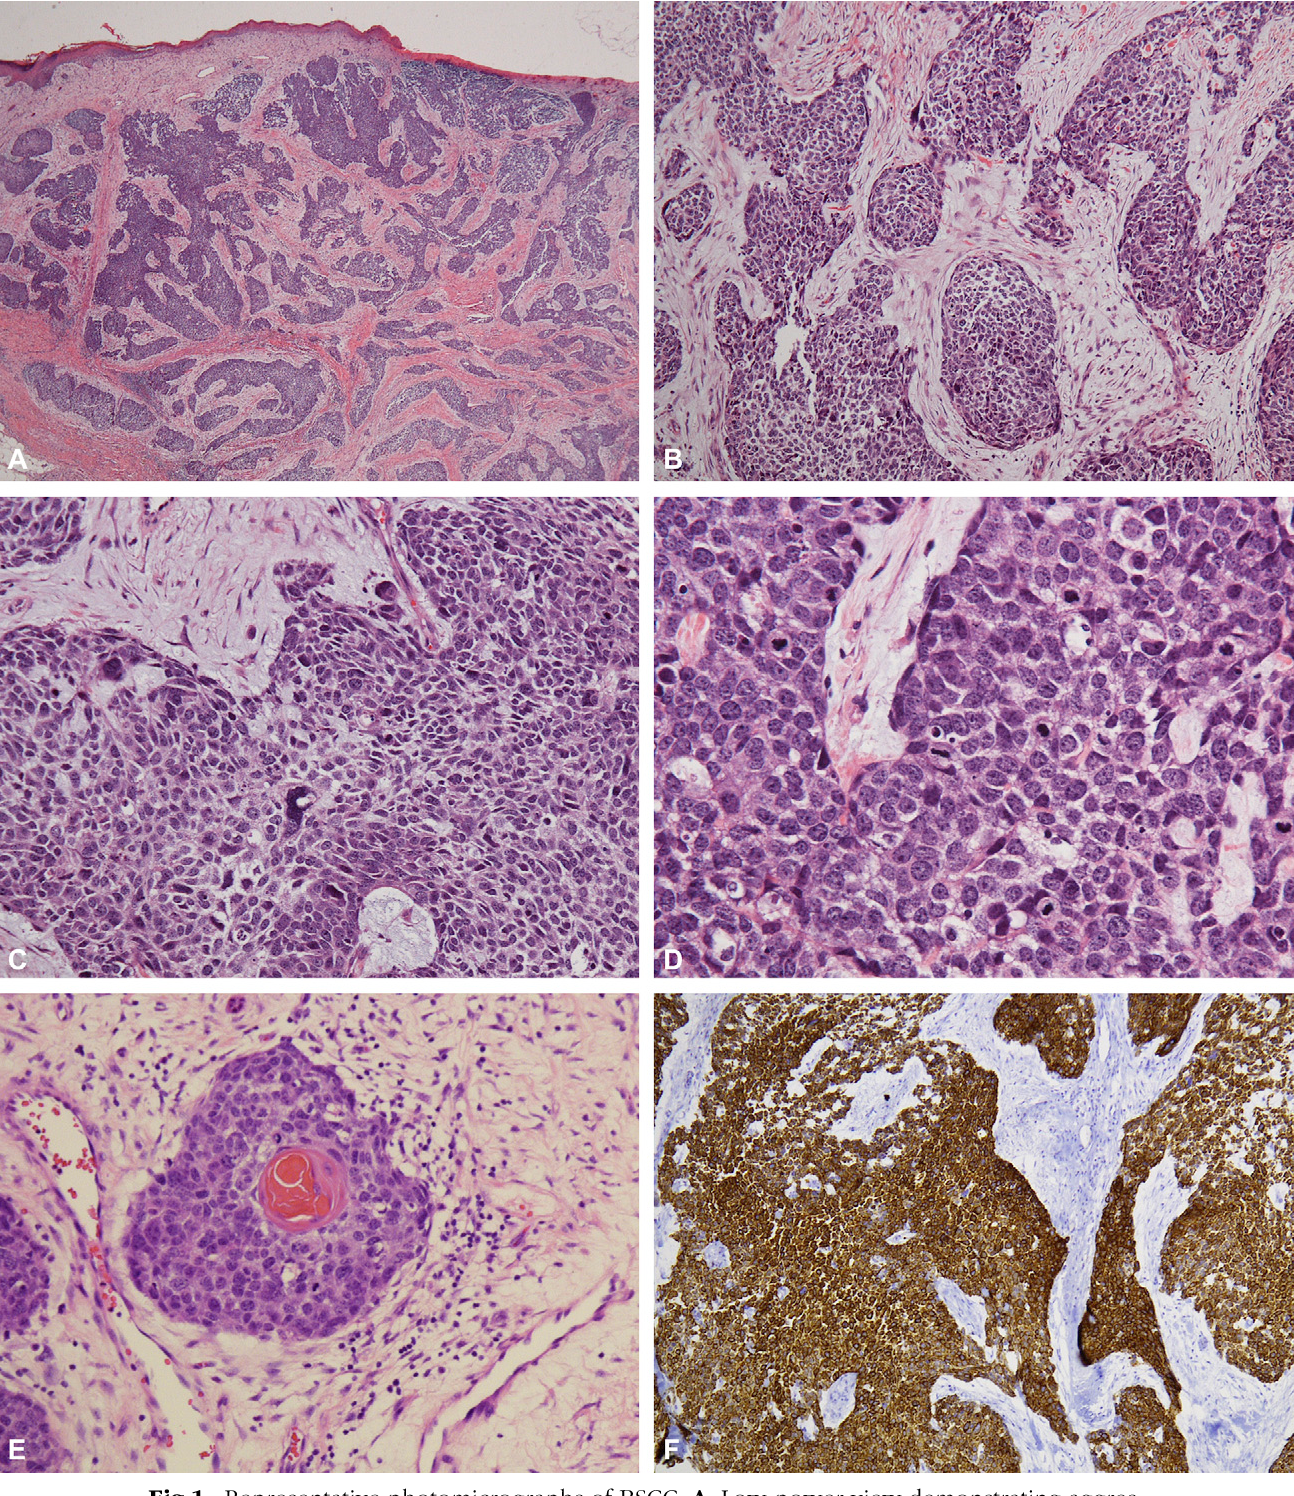 hpv basaloid squamous cell carcinoma